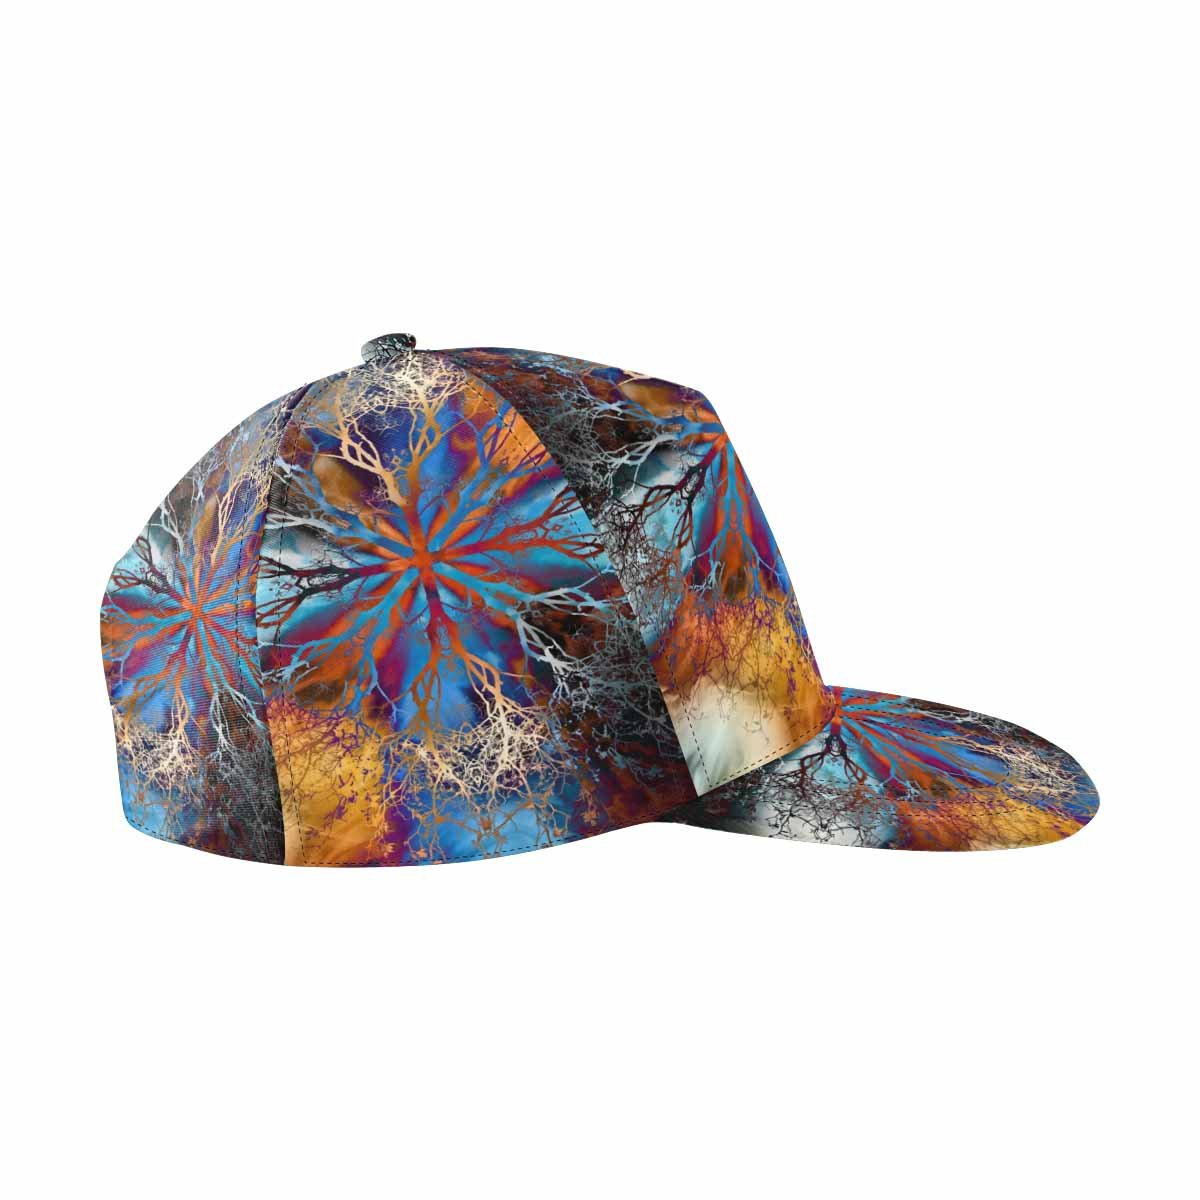 InterestPrint Outdoor Sport Trucker Cap Hats for Men and Women